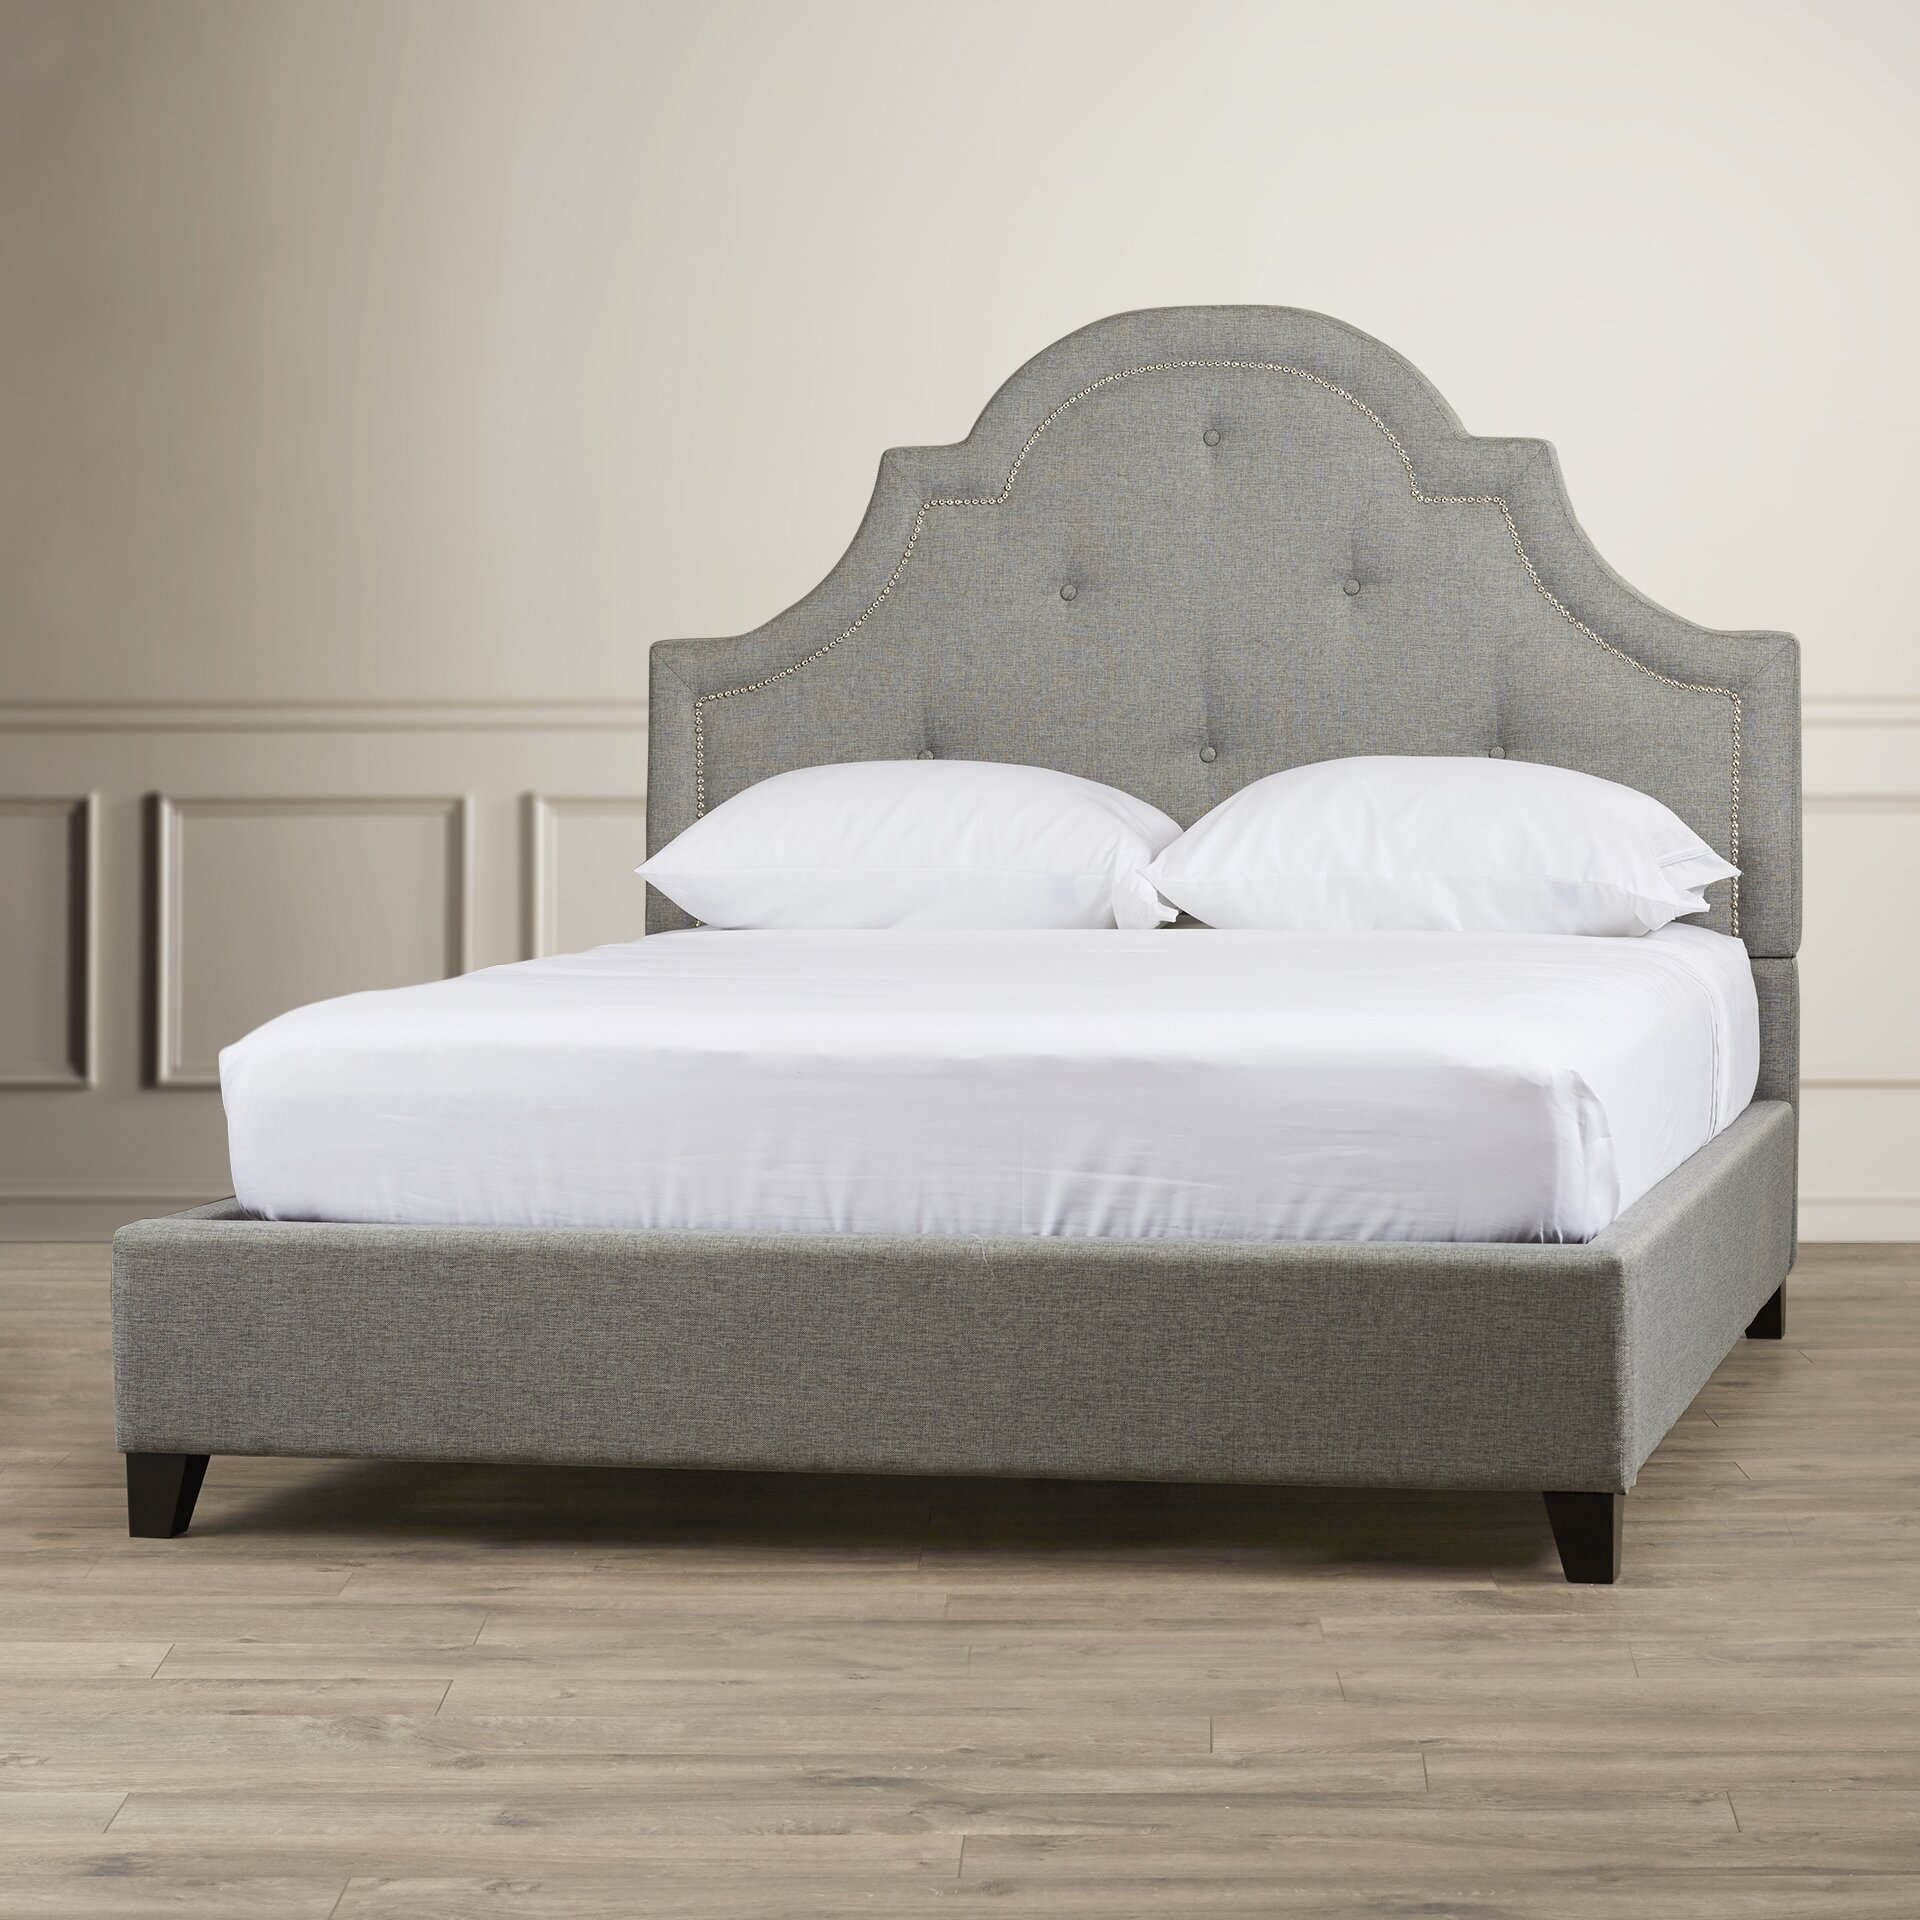 Upholstered Platform Bed : ... of Hampton Elsenborn Upholstered Platform Bed & Reviews  Wayfair